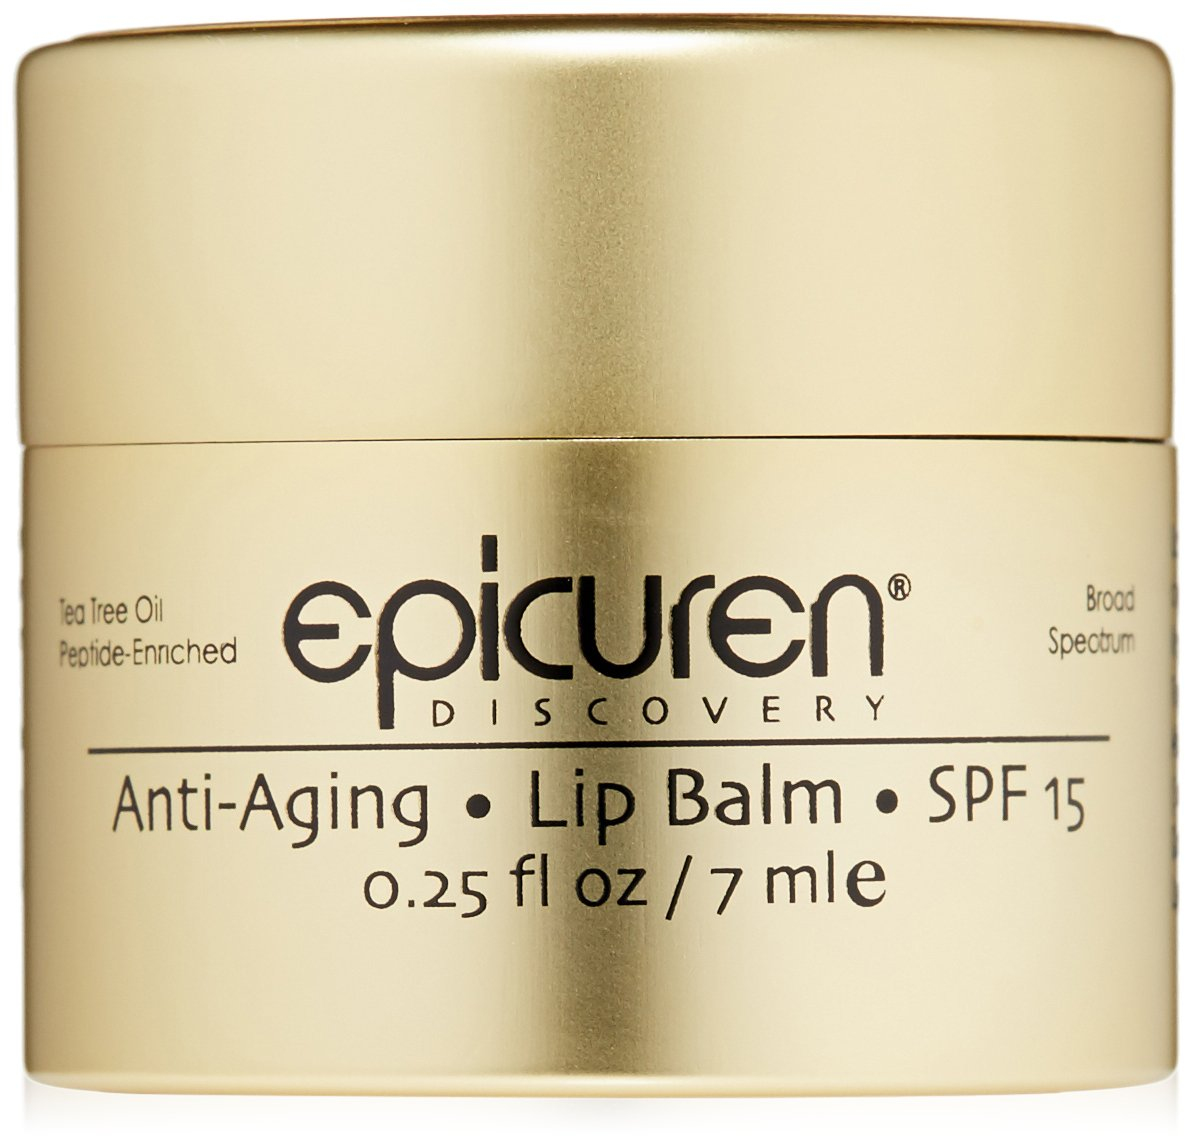 The 31 Anti-Ageing Balm That's Sells Every 7 Minutes The 31 Anti-Ageing Balm That's Sells Every 7 Minutes new pictures